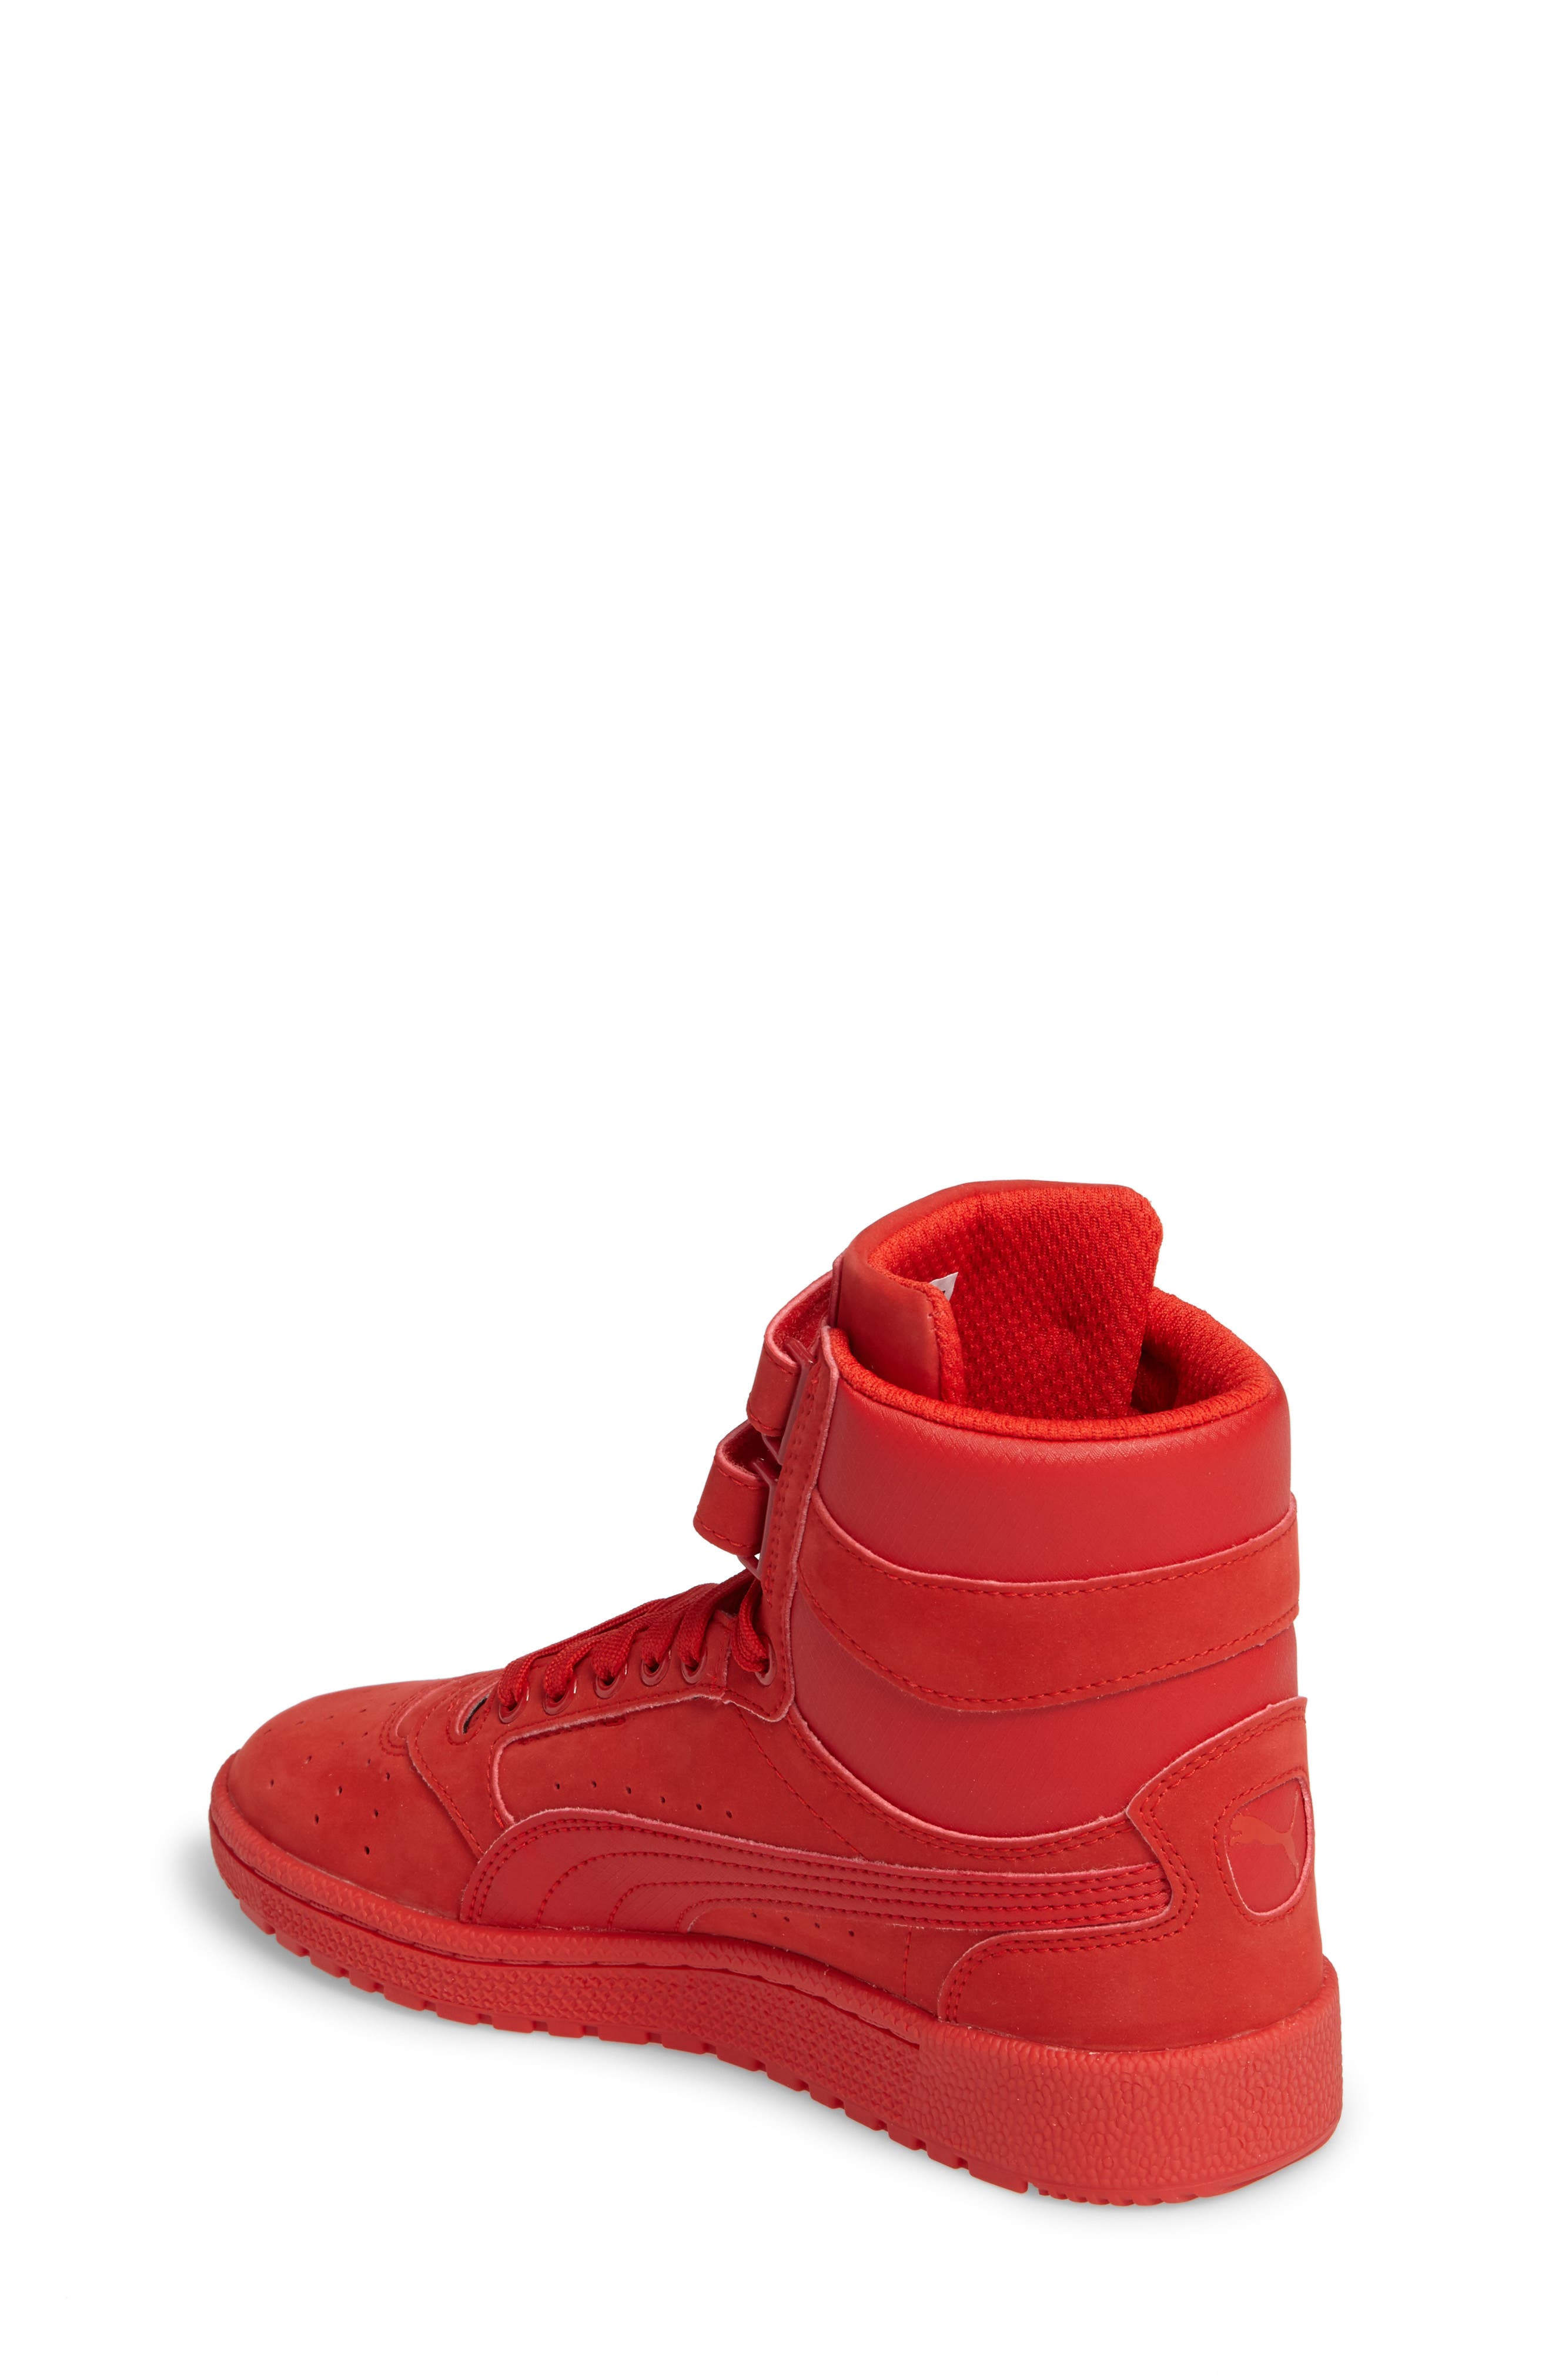 Ski II High Top Sneaker,                             Alternate thumbnail 4, color,